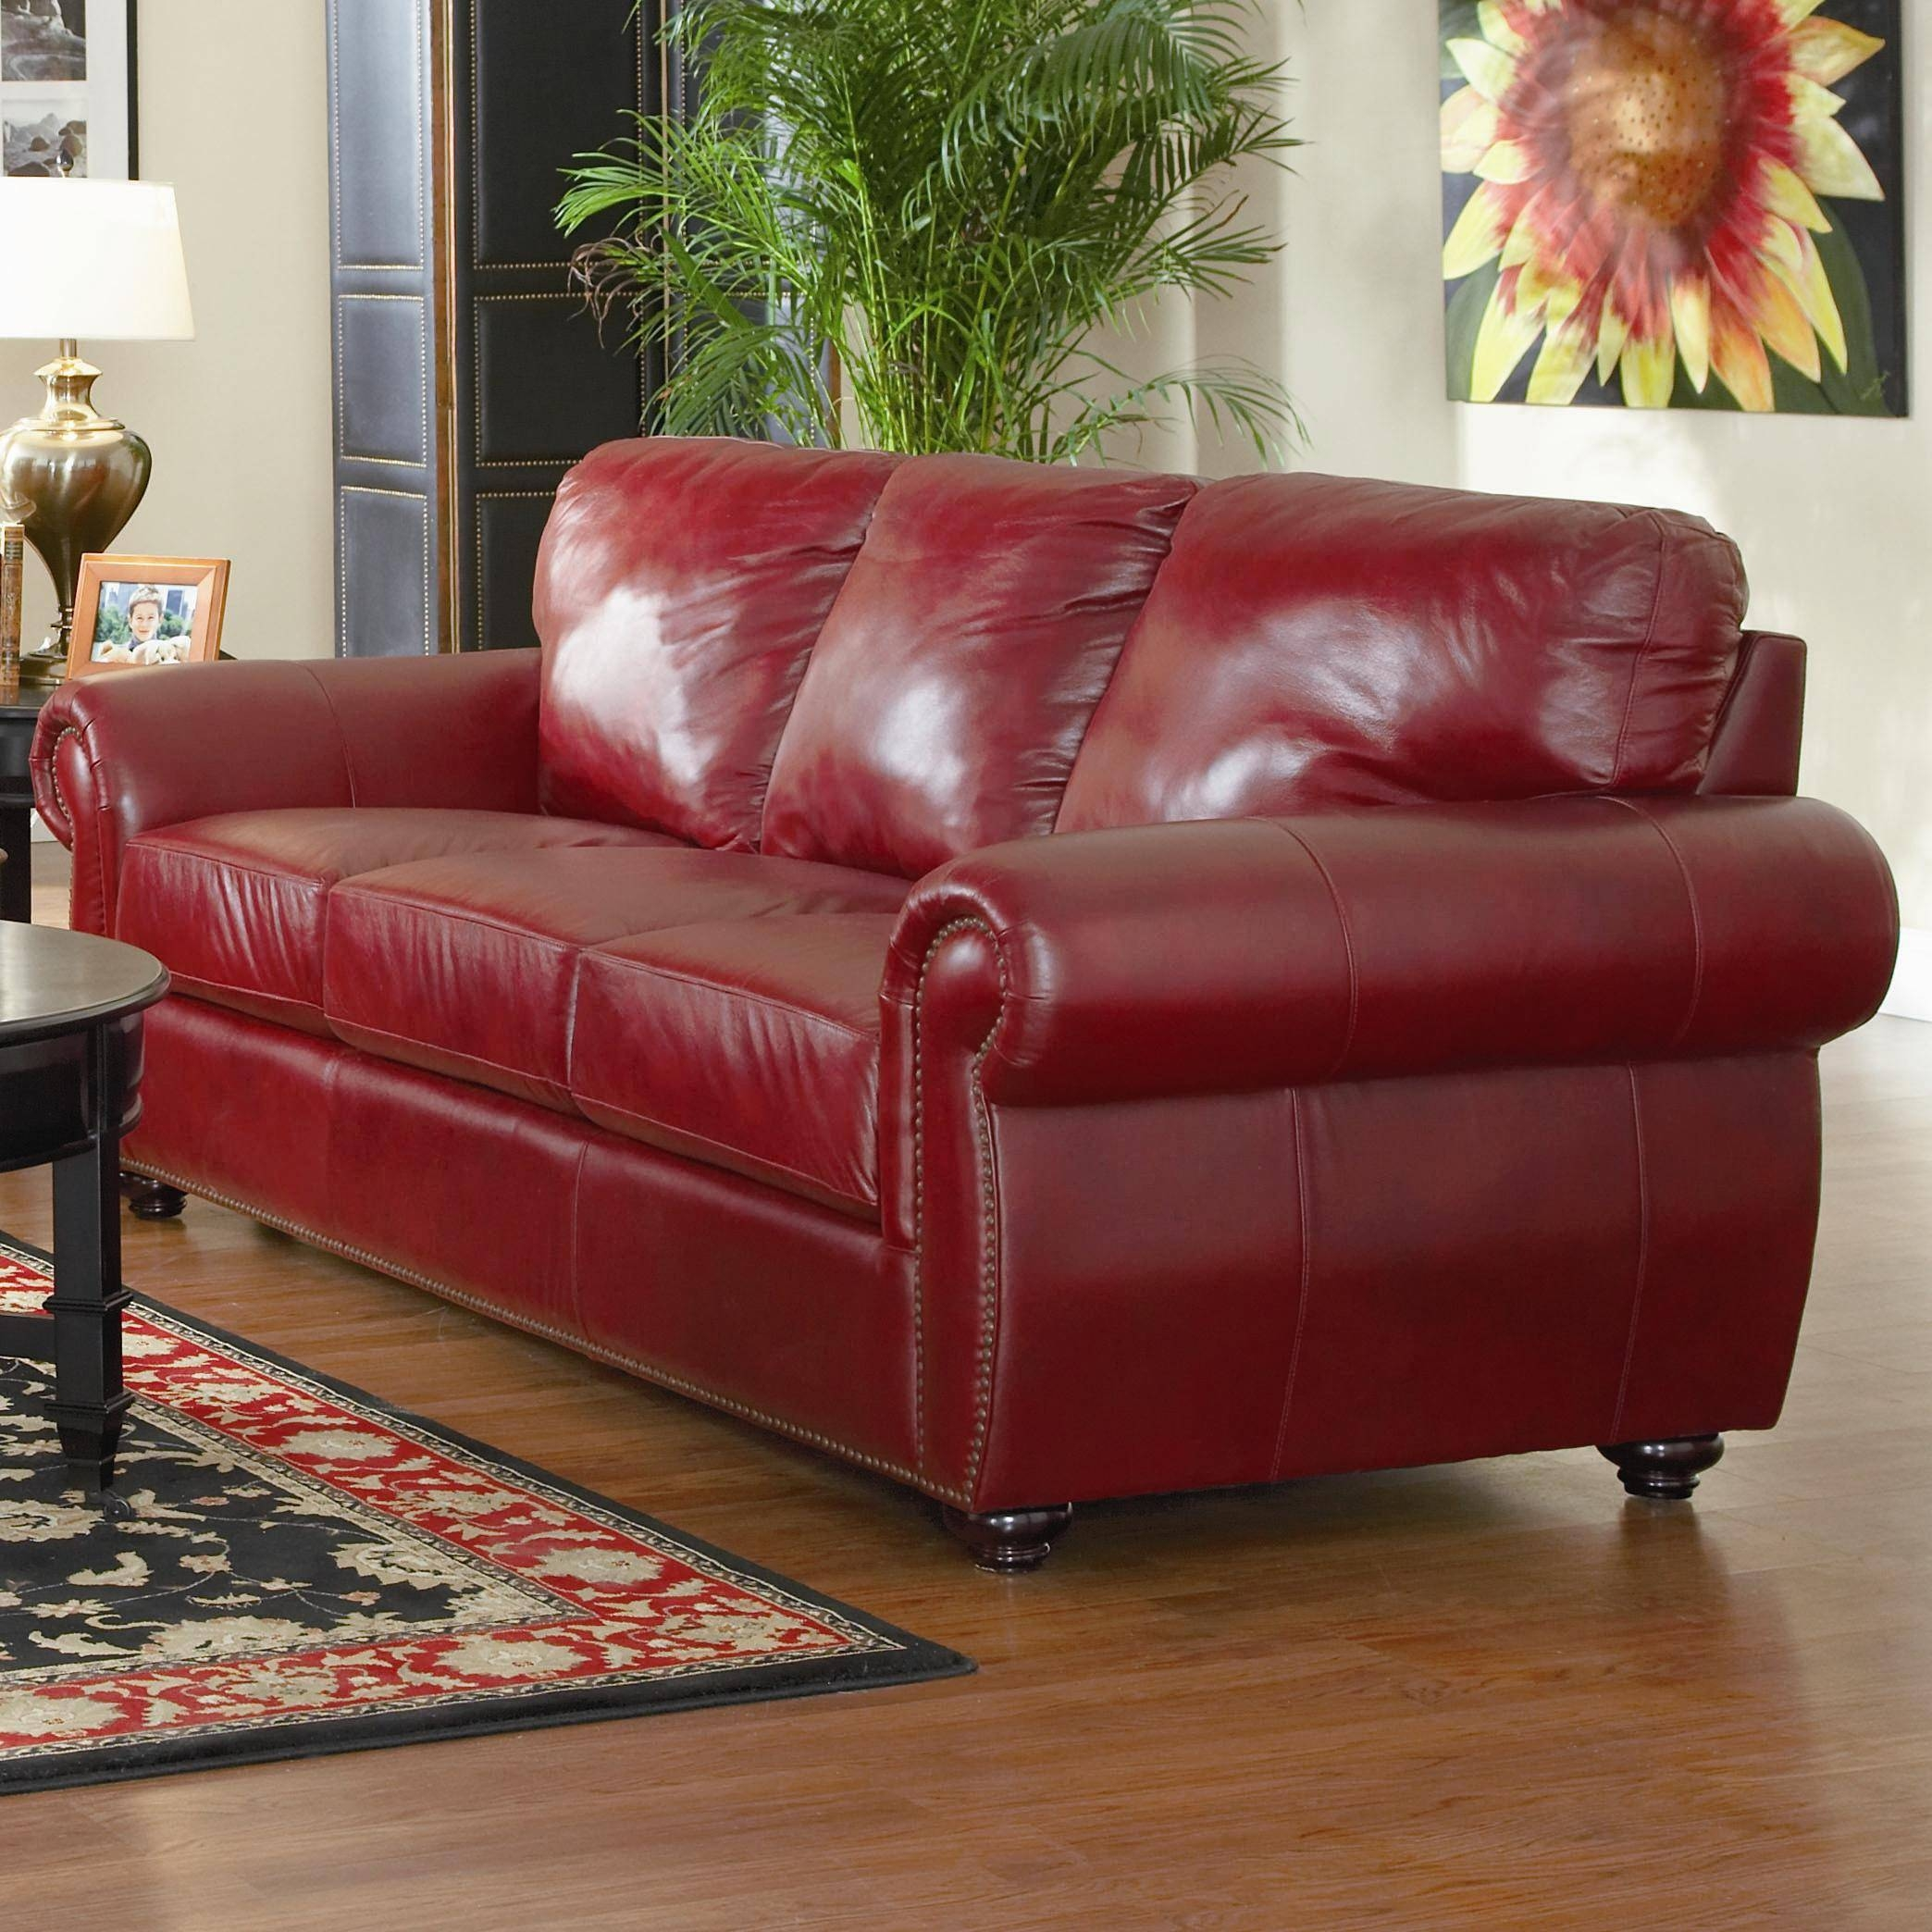 D177-501981 By-Regency Furniture Lewis Collection Burgundy Finish inside Traditional Leather Couch (Image 6 of 30)